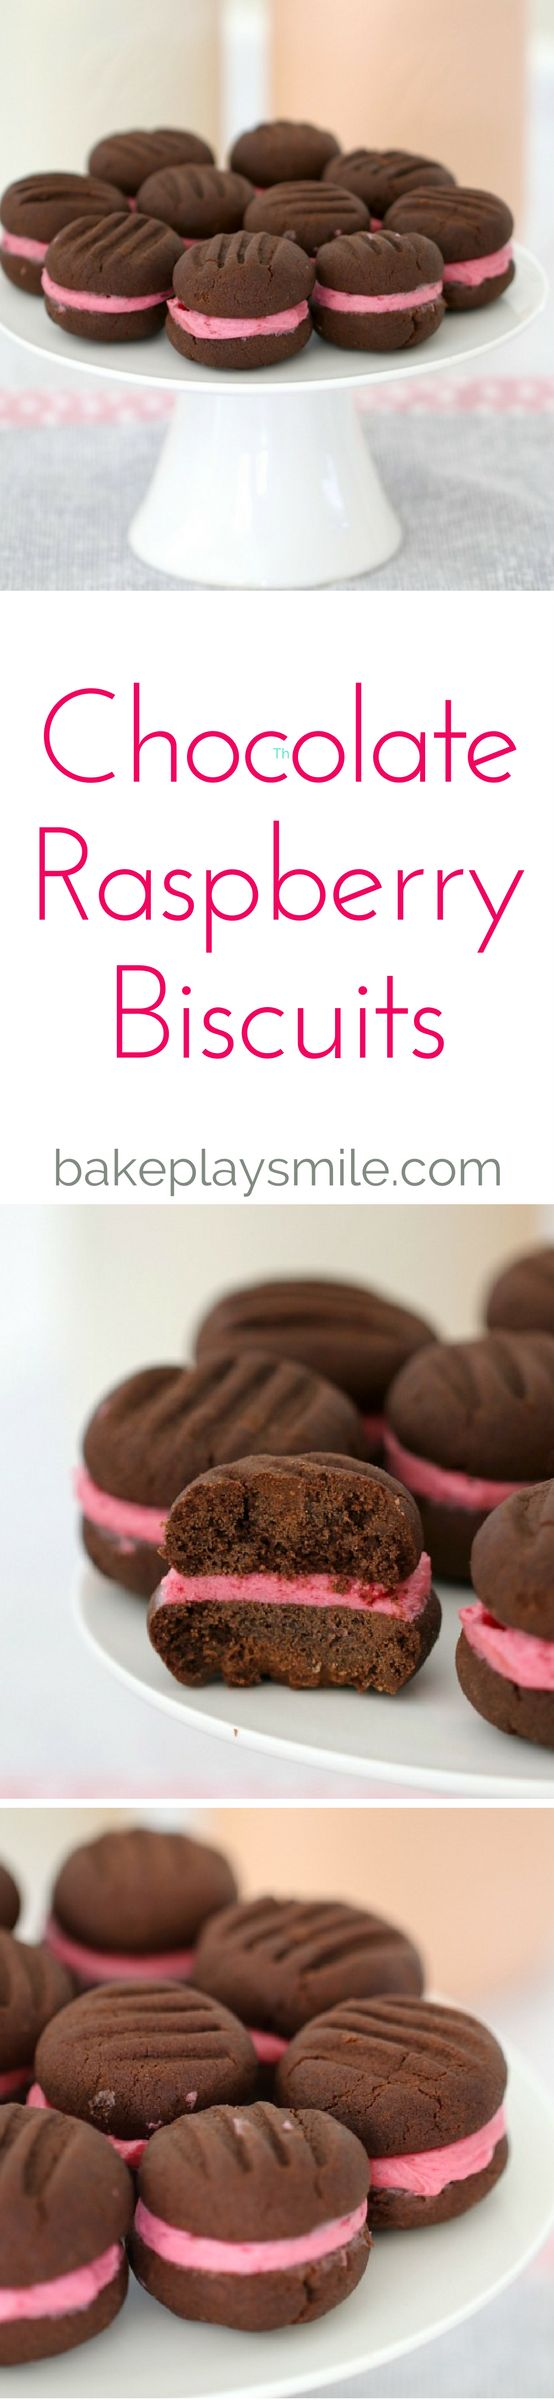 These Thermomix Chocolate Raspberry Biscuits are double trouble with TWO yummy chocolate biscuits and a drool-worthy raspberry filling. #chocolate #raspberry #cookies #biscuits #baking #easy #recipe #conventional #thermomix